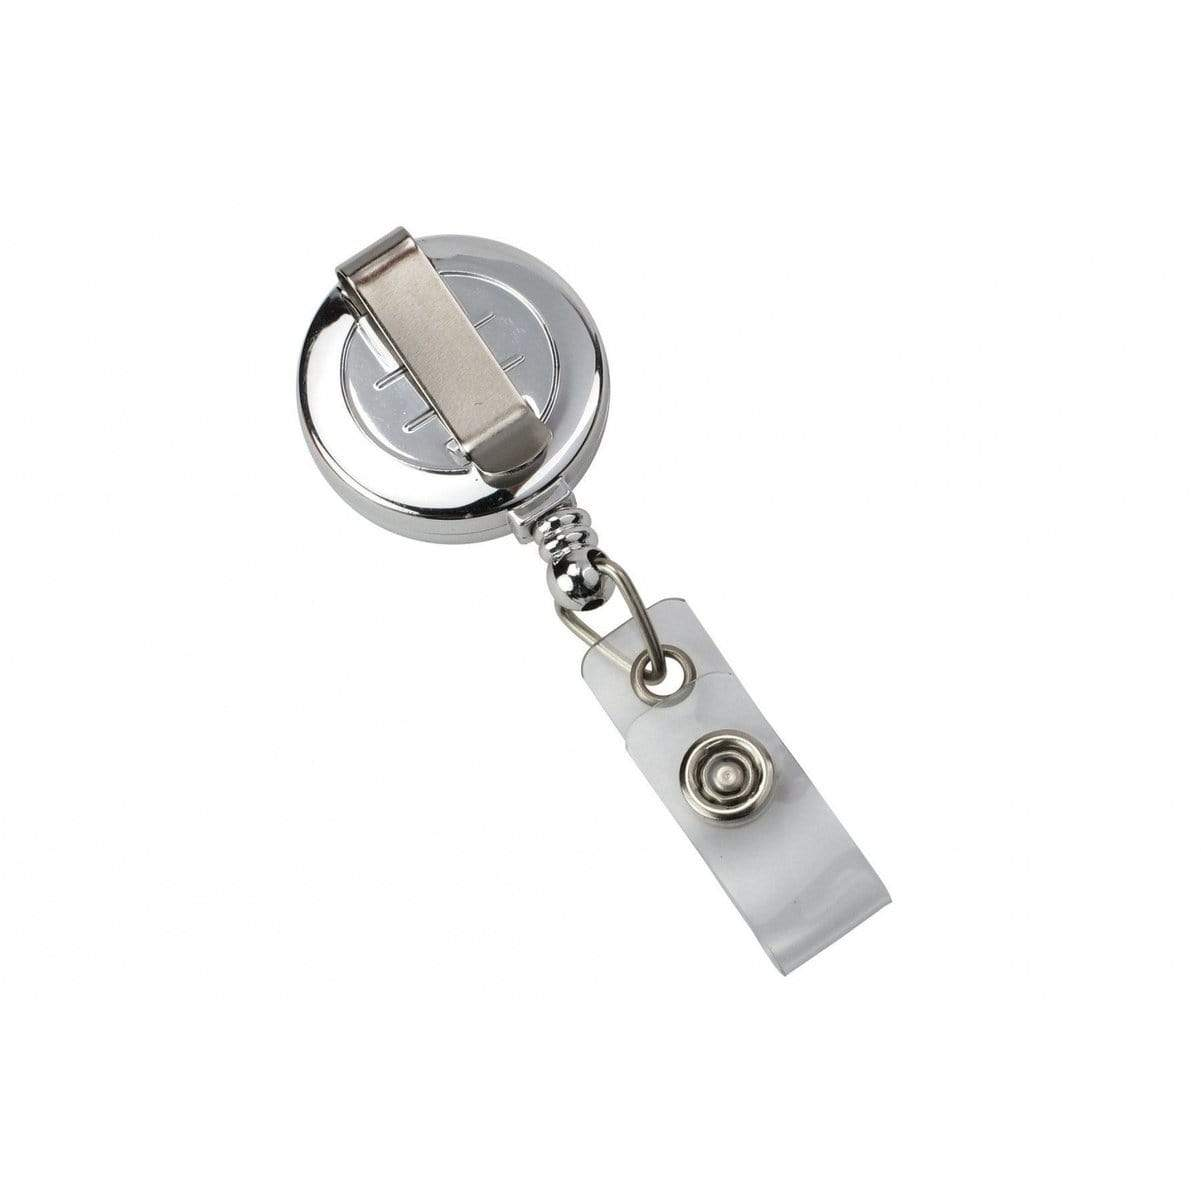 Silver Chrome Plastic Badge Reel With  Belt Clip (P/N 2120-3030)